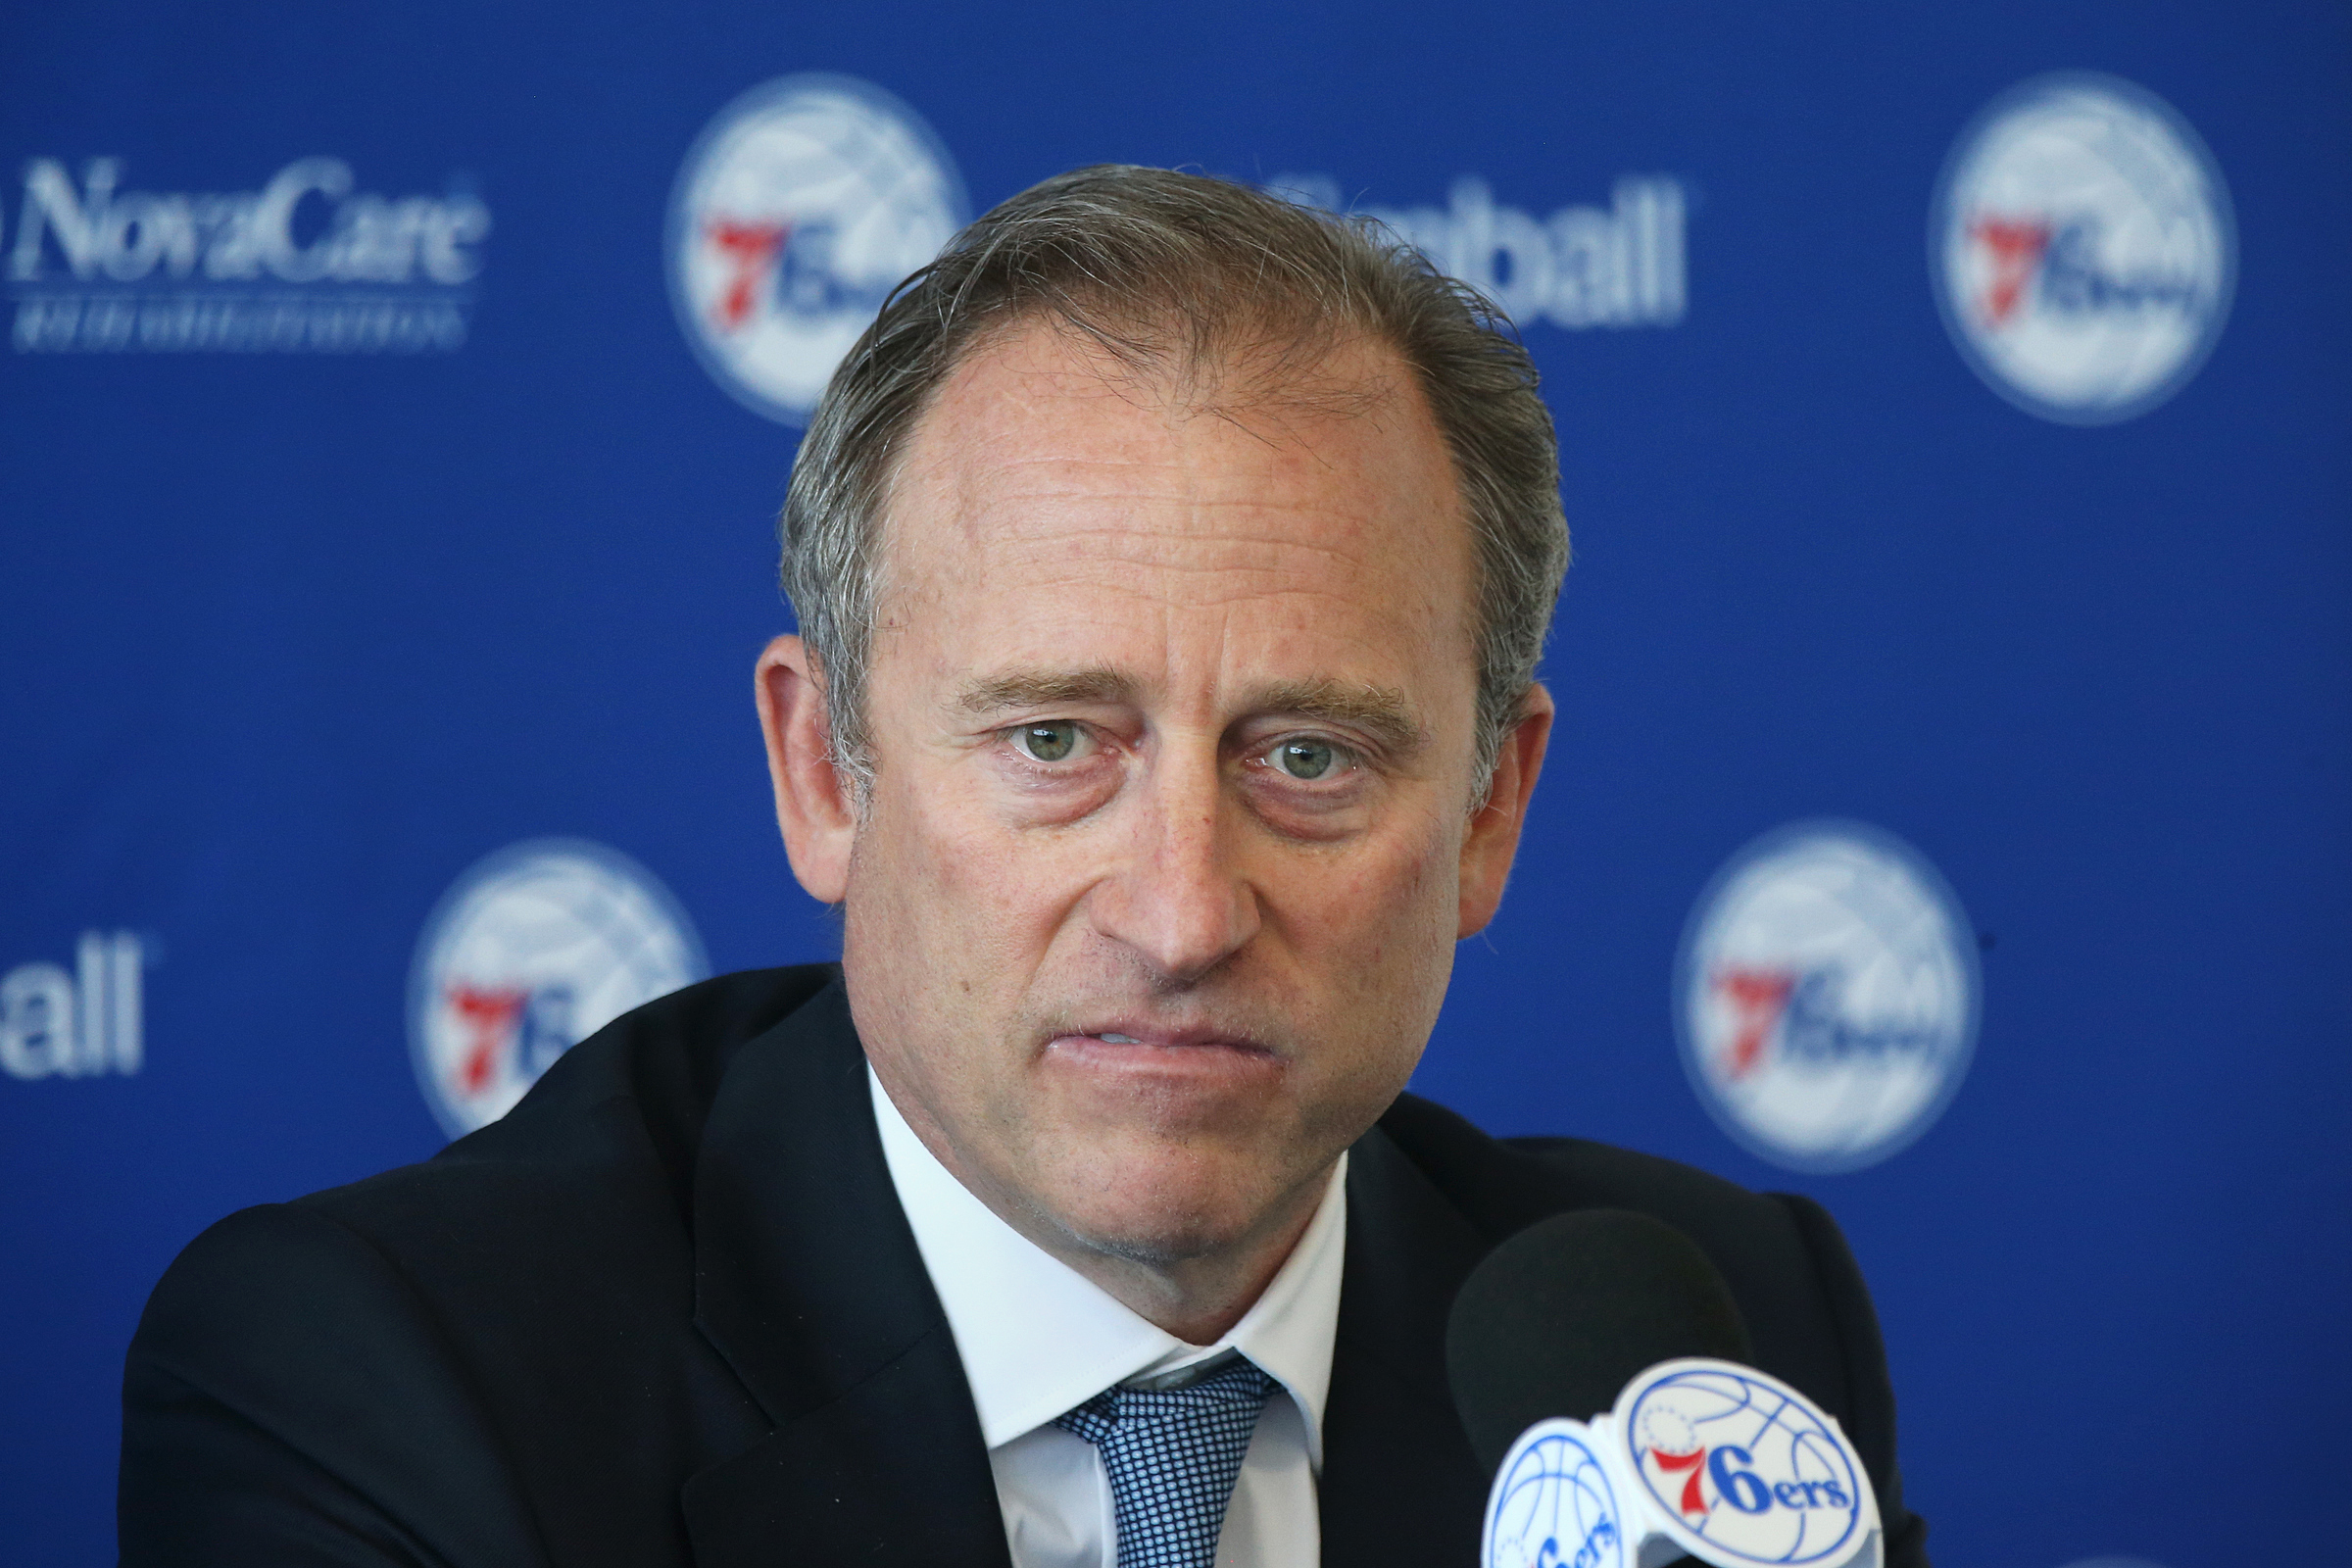 Sixers majority owner Josh Harris is swinging for the fences in the team´s GM search.